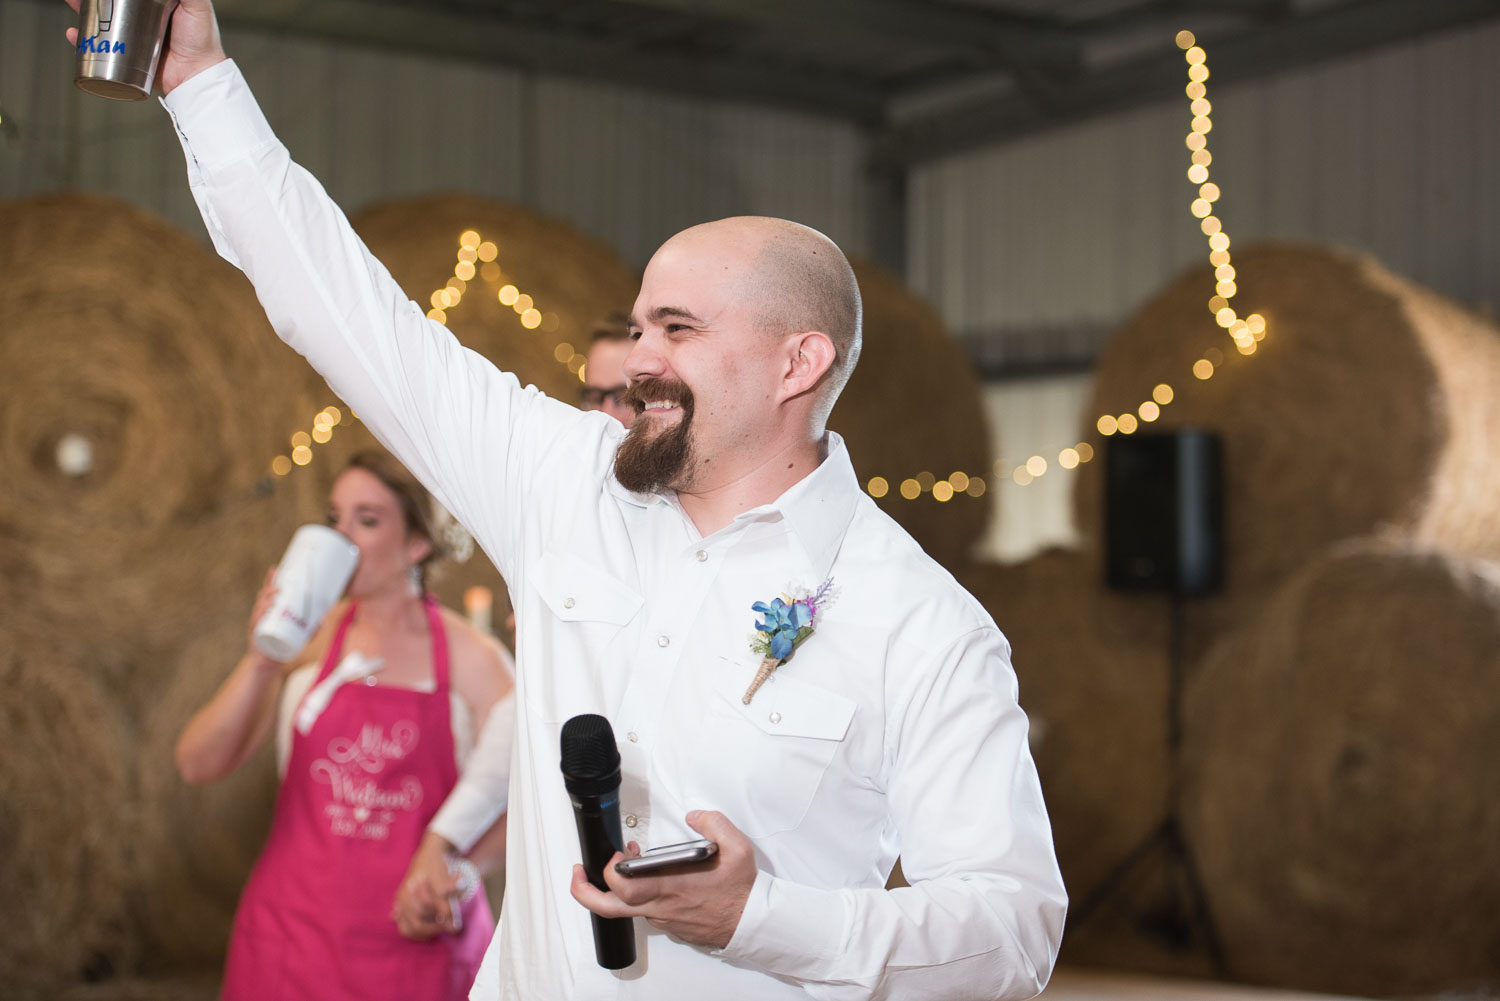 80 best man raises his glass to the new couple.jpg